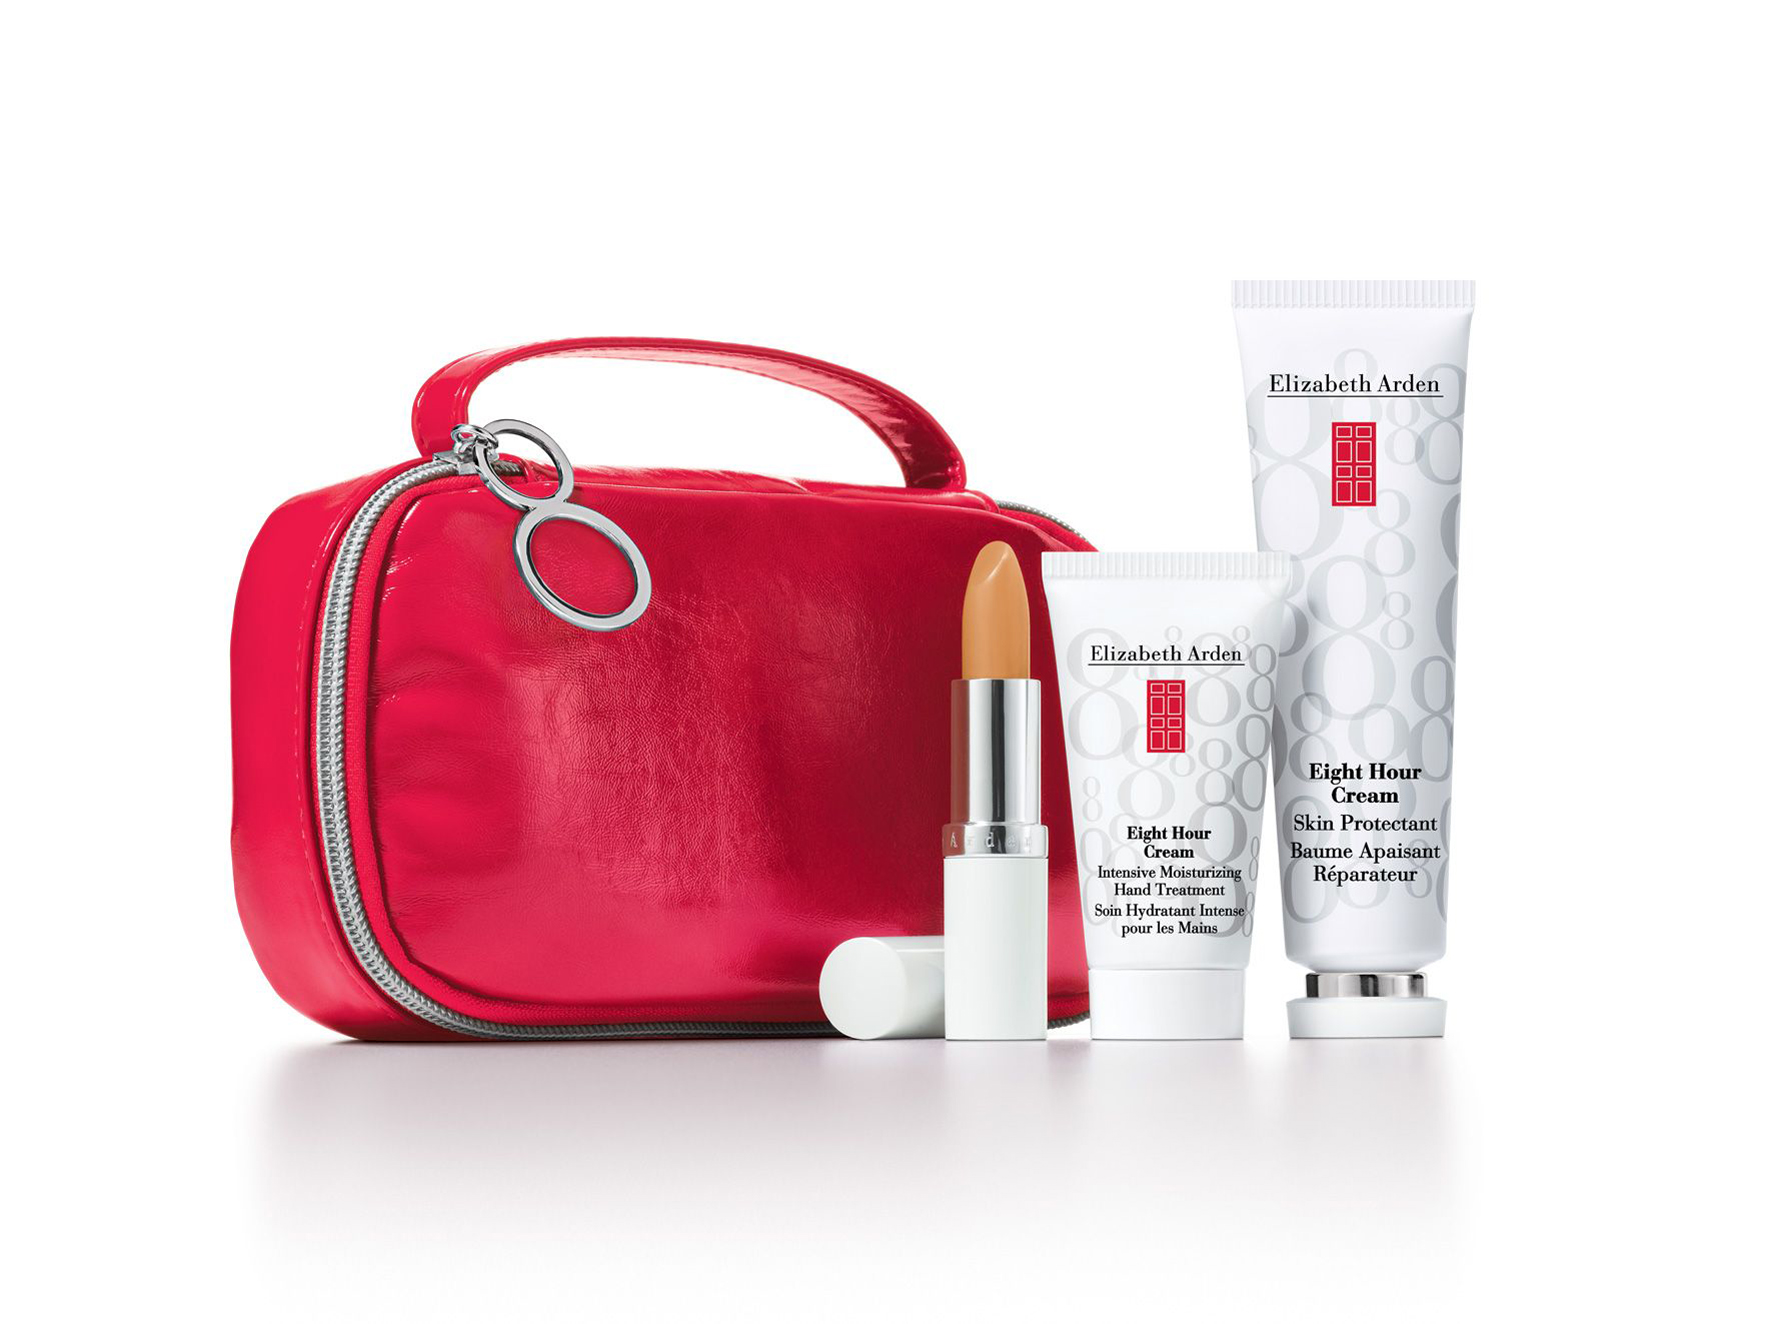 Most customer favourites are from the Elizabeth Arden range